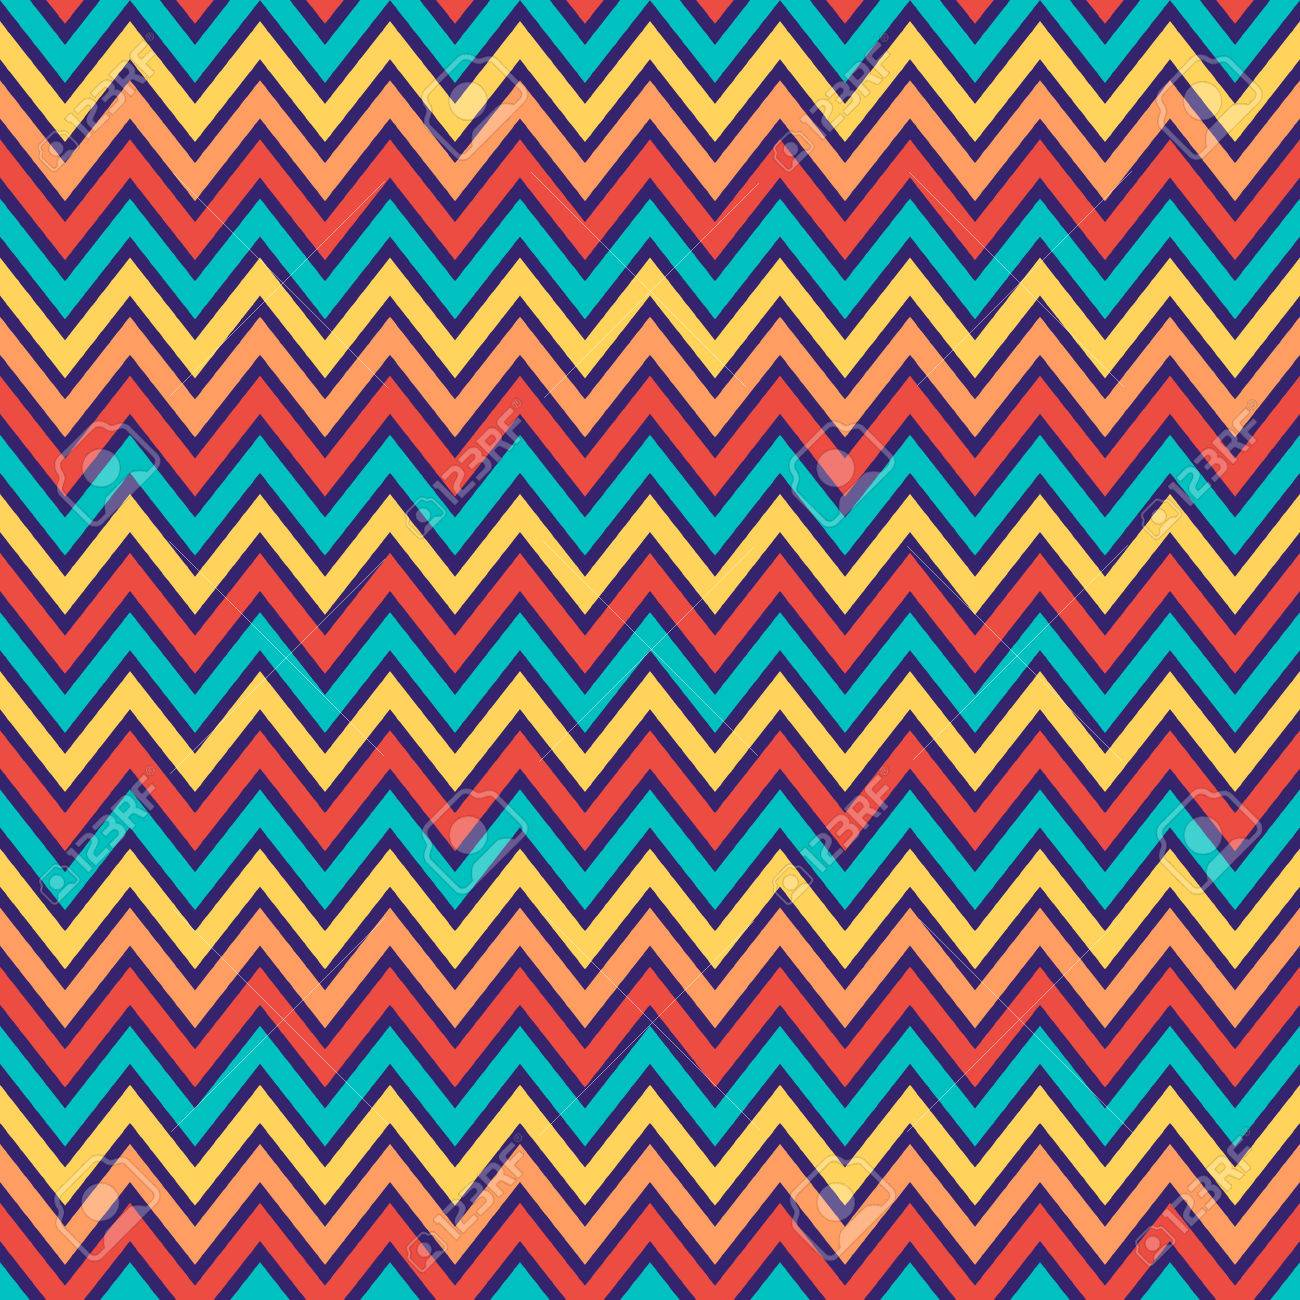 Scrapbook paper as wallpaper - Seamless Chevron Pattern In Retro Style Soft Colors Geometric Background Can Be Used